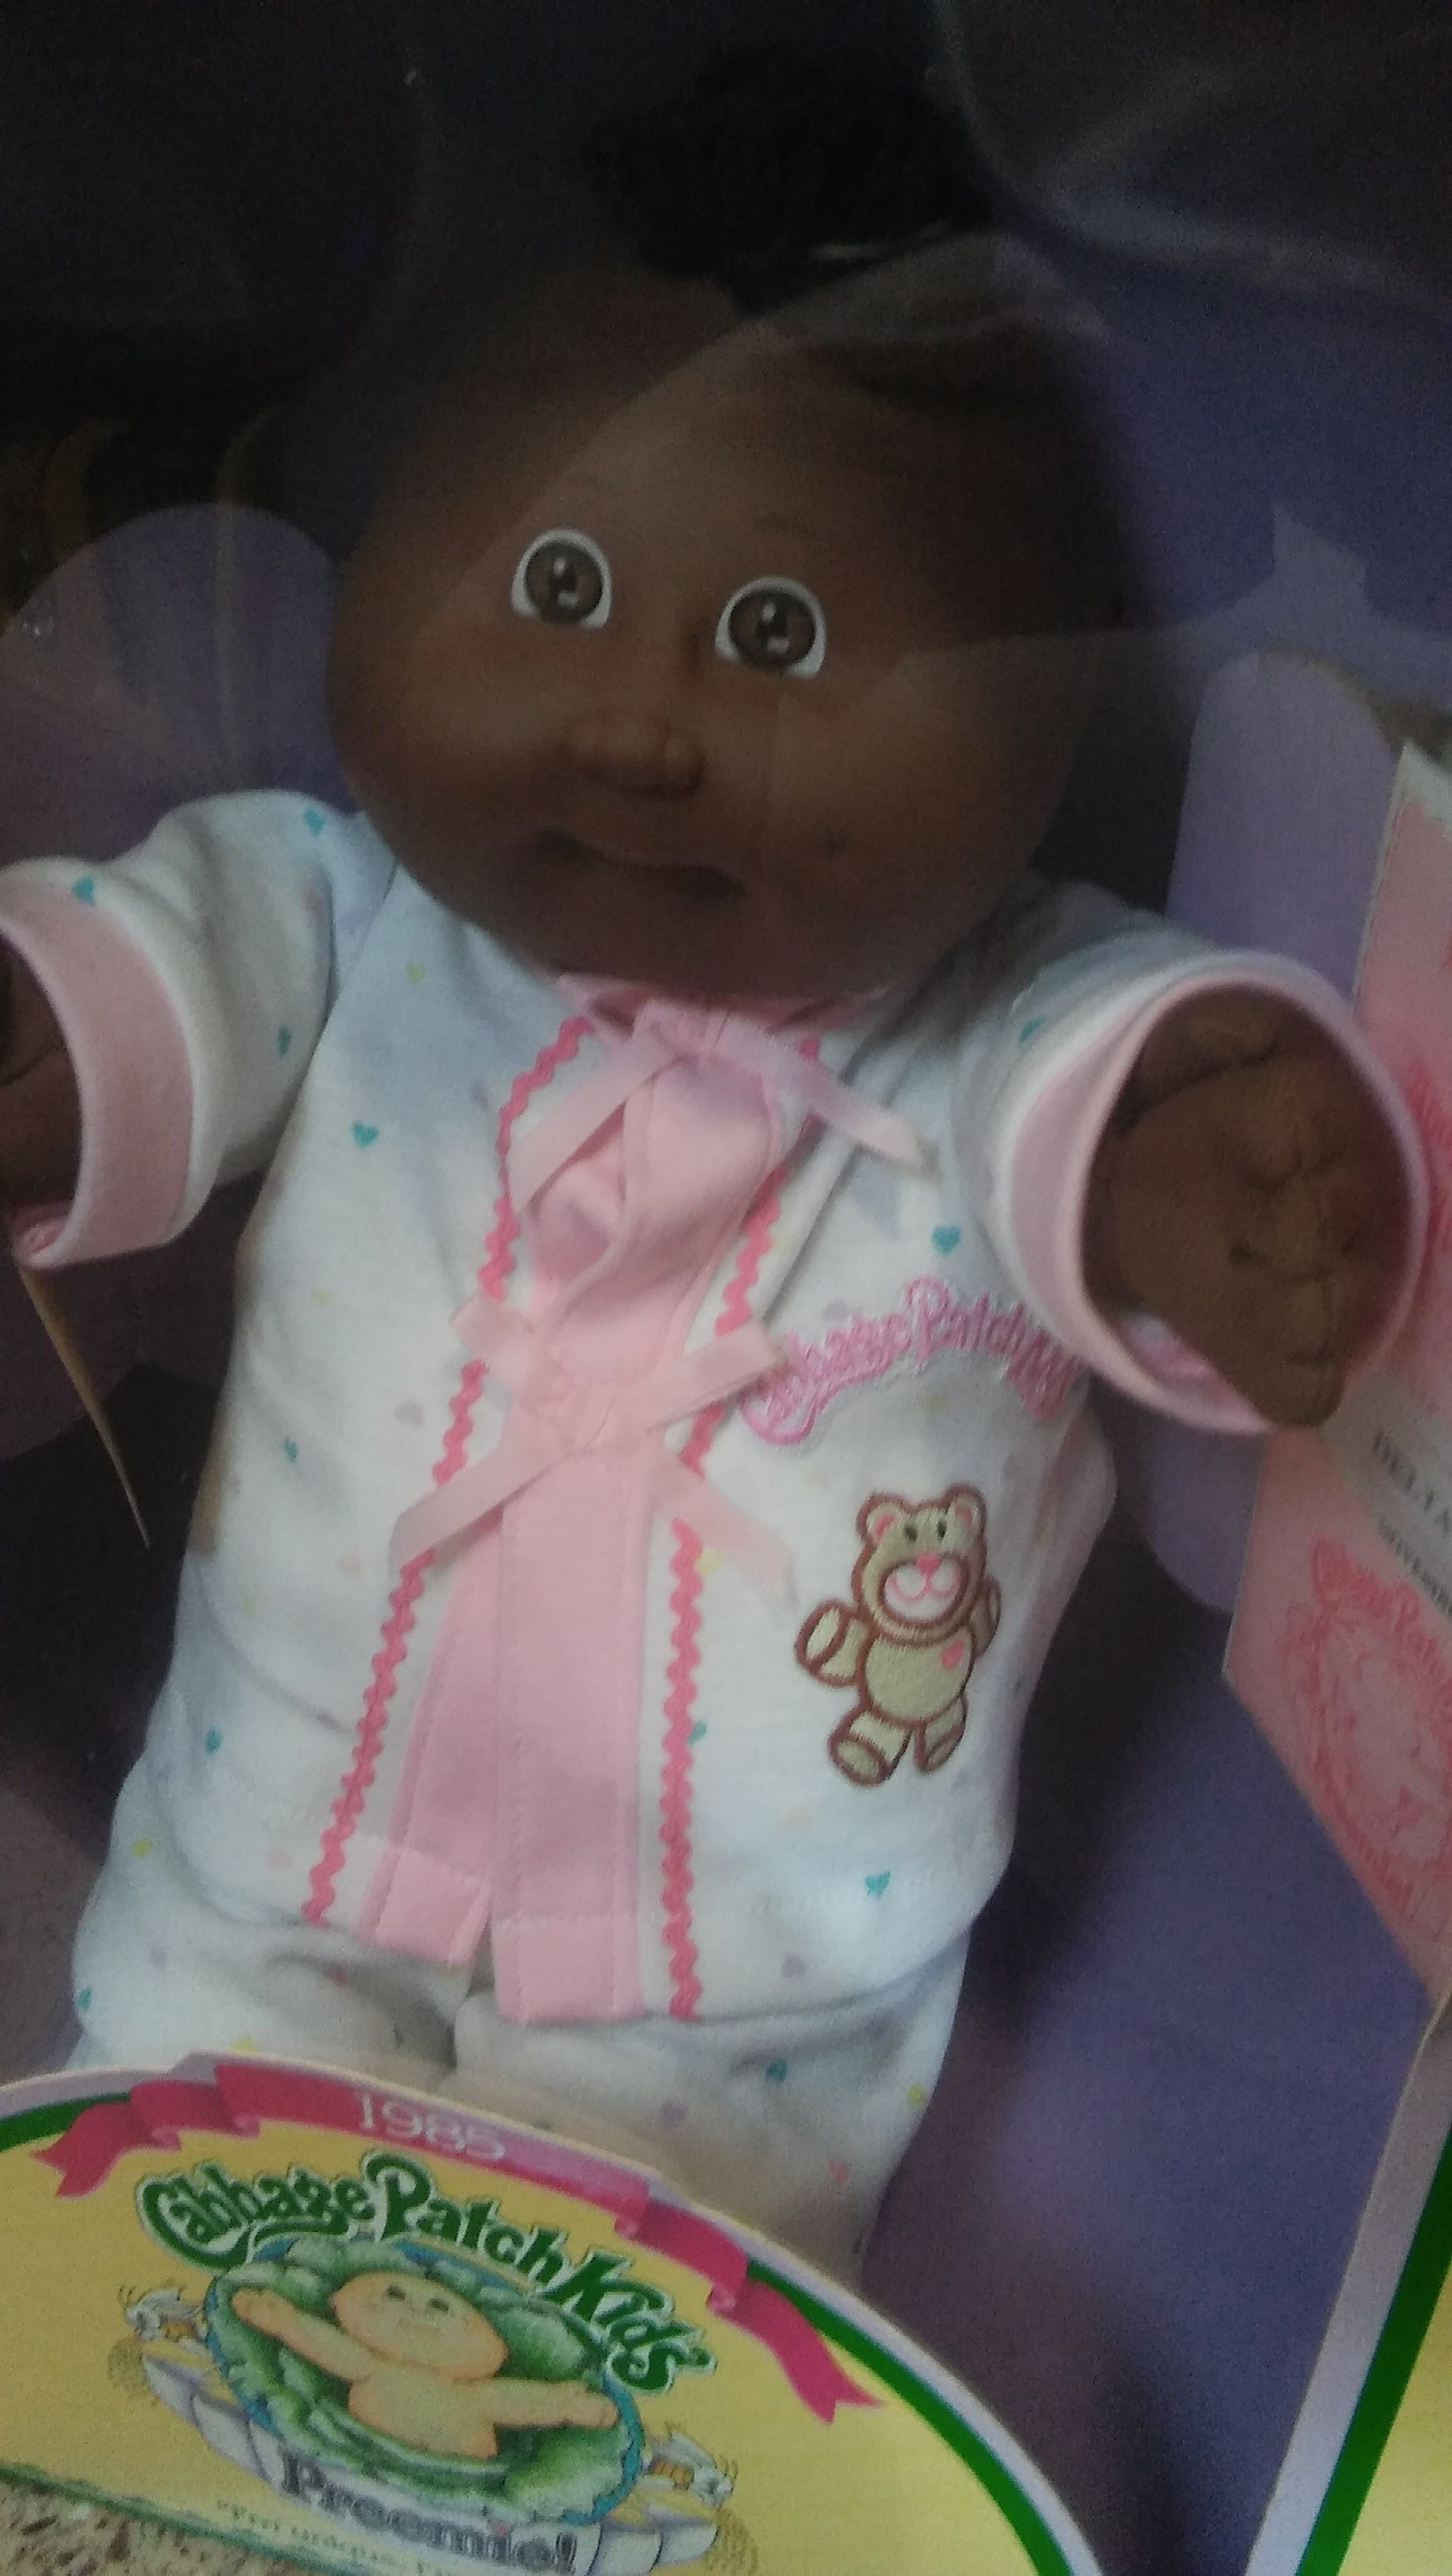 1985 Cabbage Patch Kid Preemie Her Name Is Delta Fiona Cabbage Patch Kids Dolls Cabbage Patch Dolls Cabbage Patch Kids